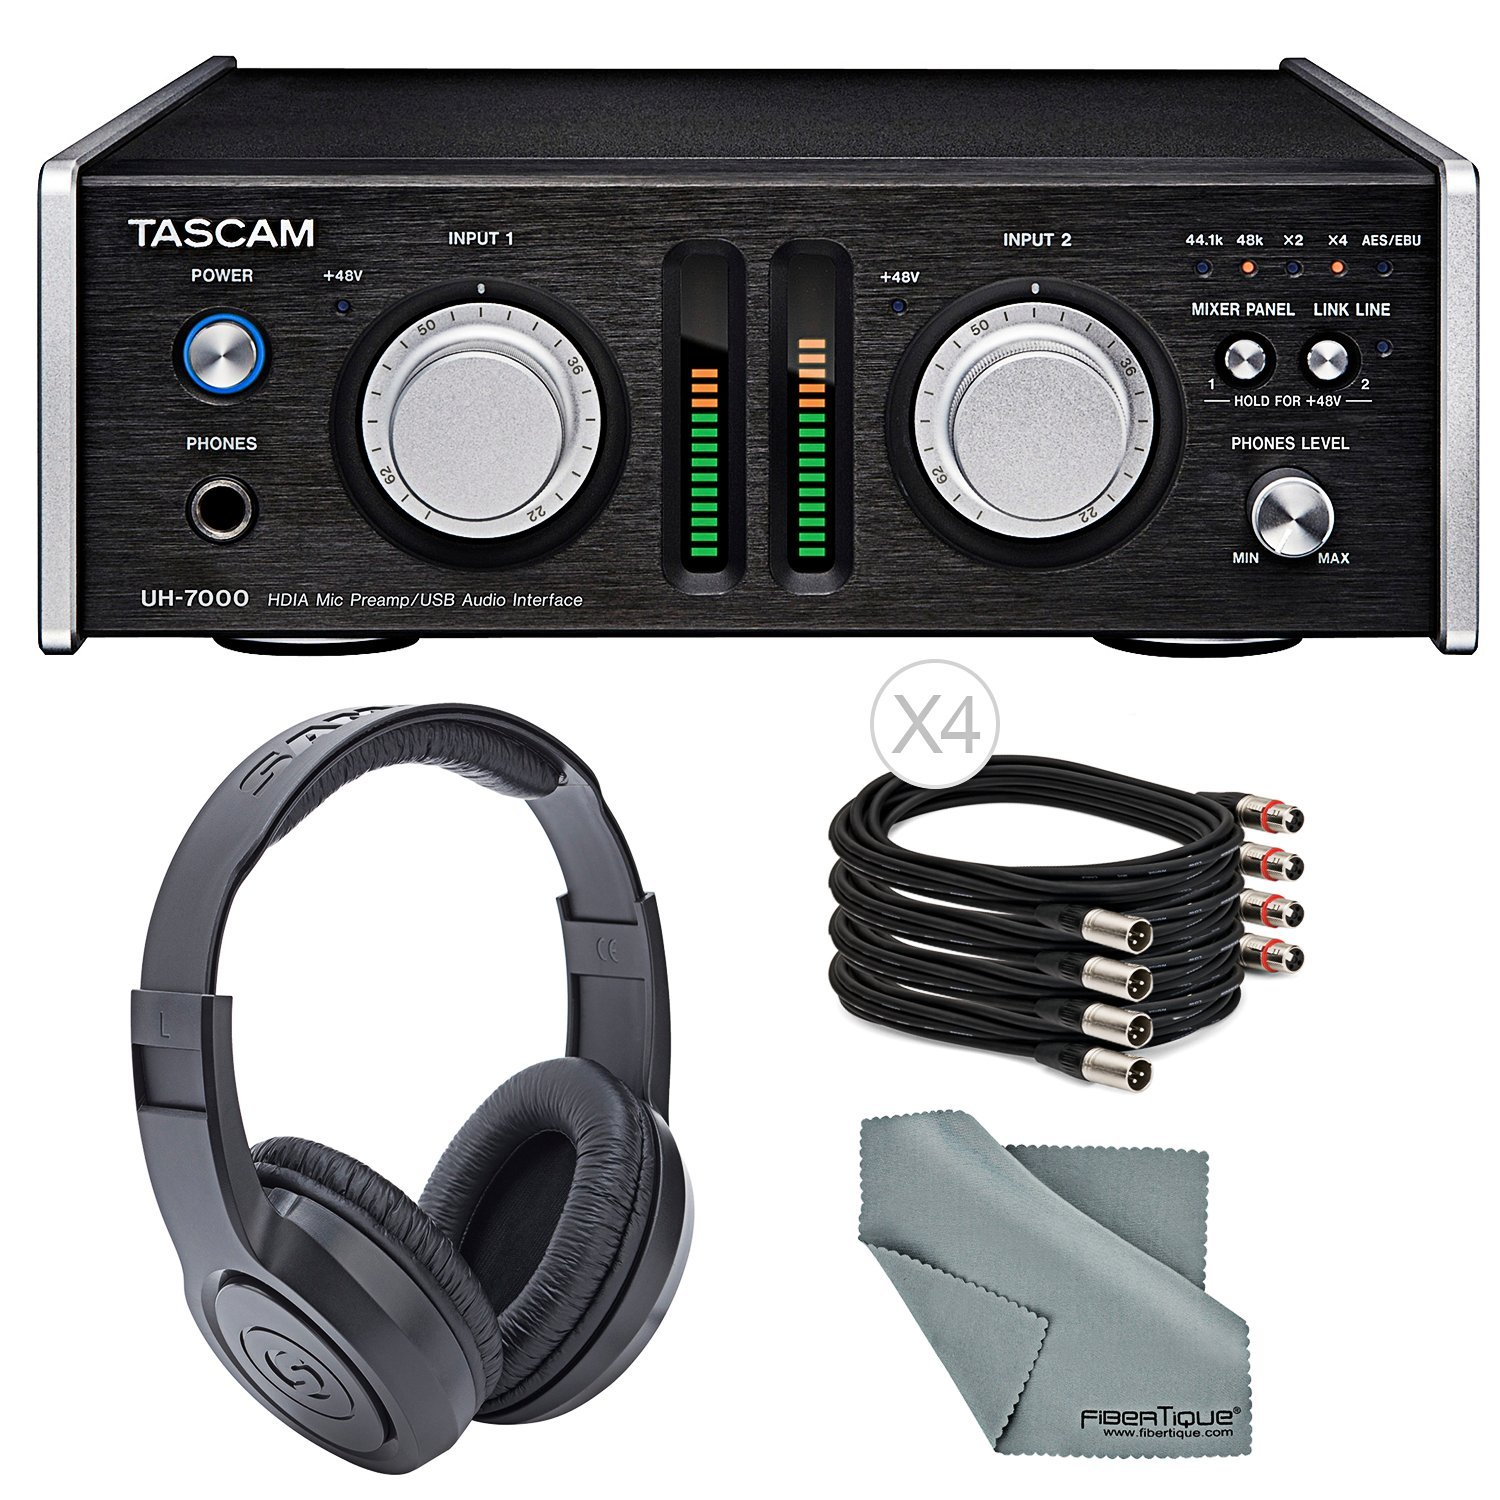 Tascam UH-7000 USB Interface and Standalone Mic Preamp Bundle w/ Headphones+Cable and FiberTique Cloth Photo Savings PS-UH-7000